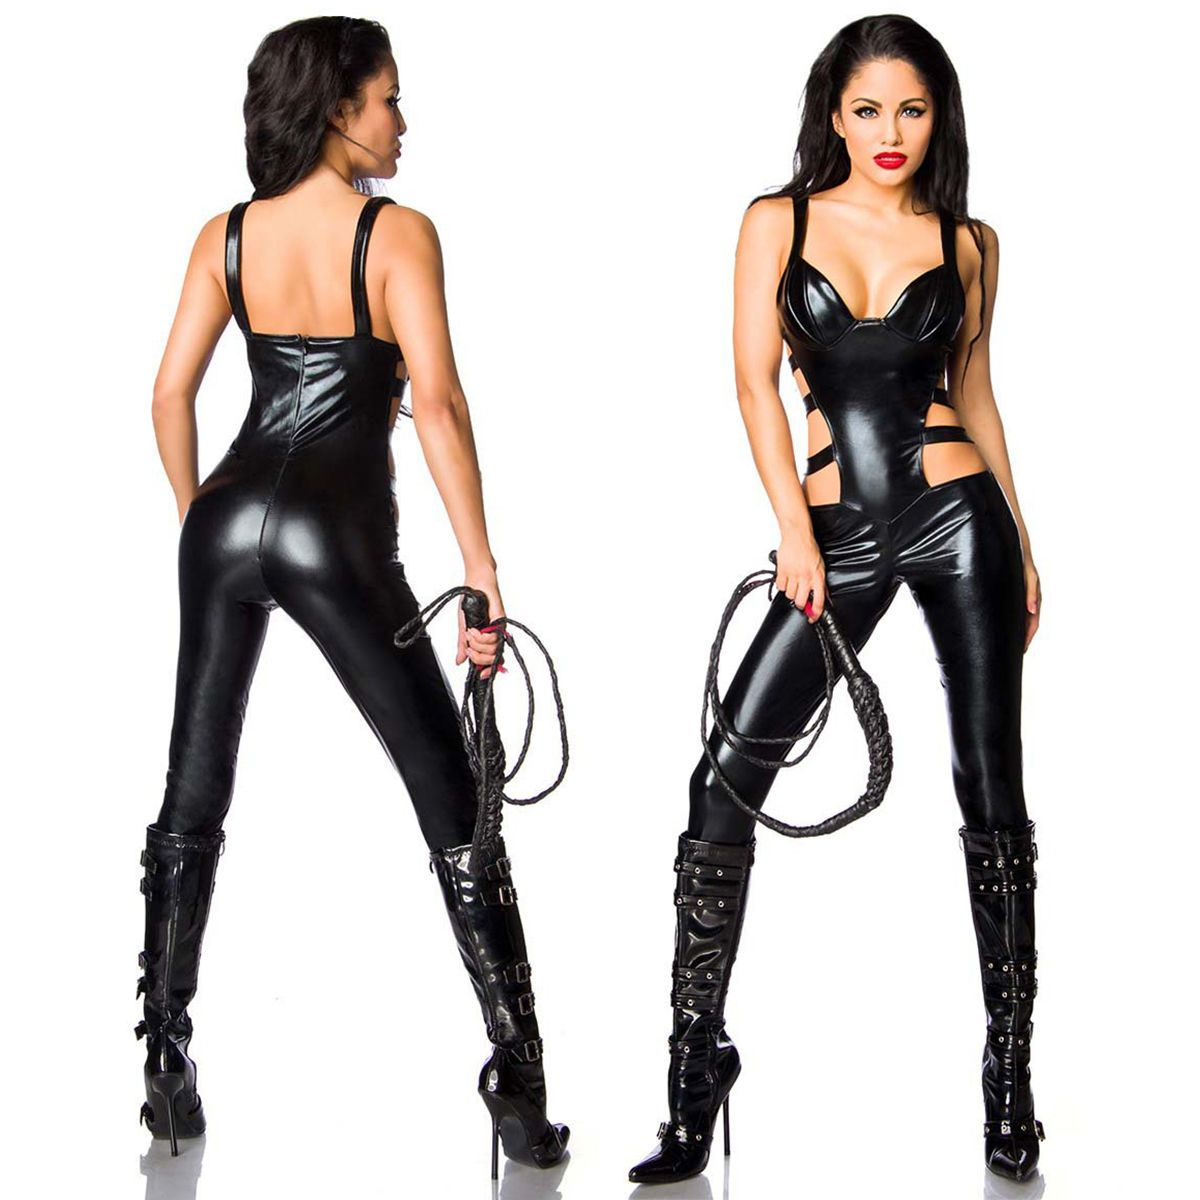 e87807a2bc Sexy Women Zipper Pvc Leather Catsuit Bodysuit Jumpsuit Costume Gothic  Clubwear